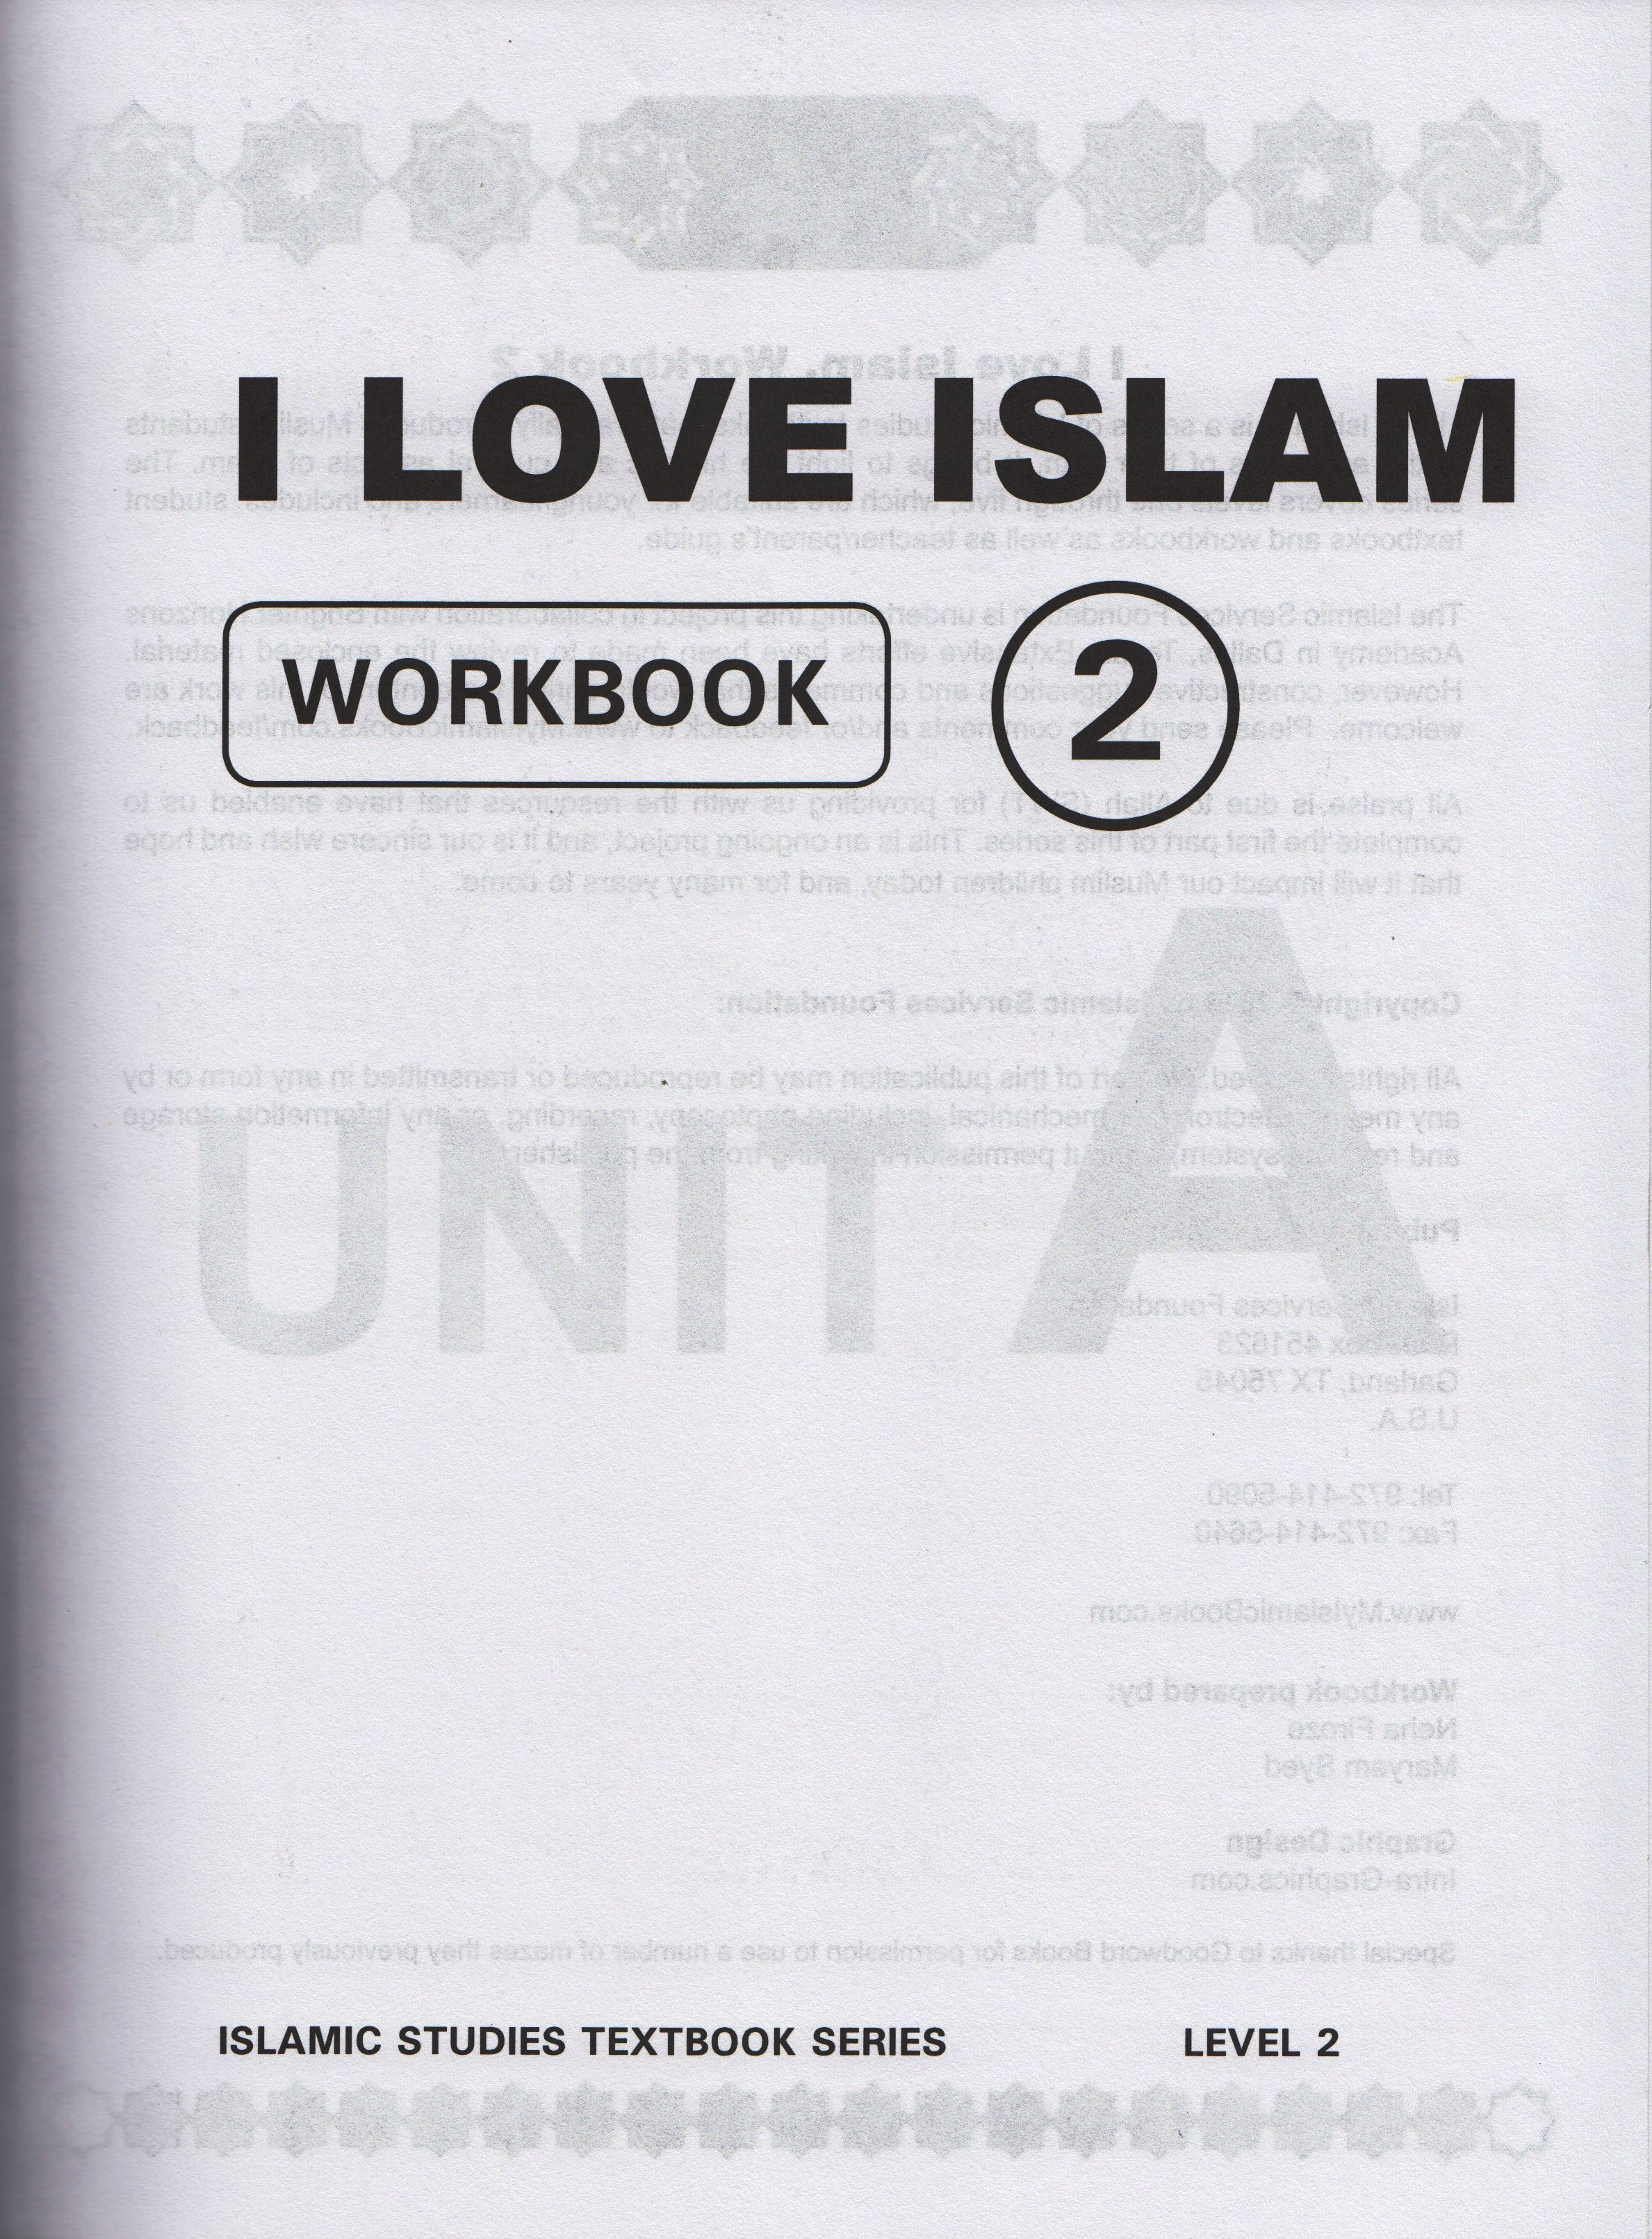 I love islam pictures in home